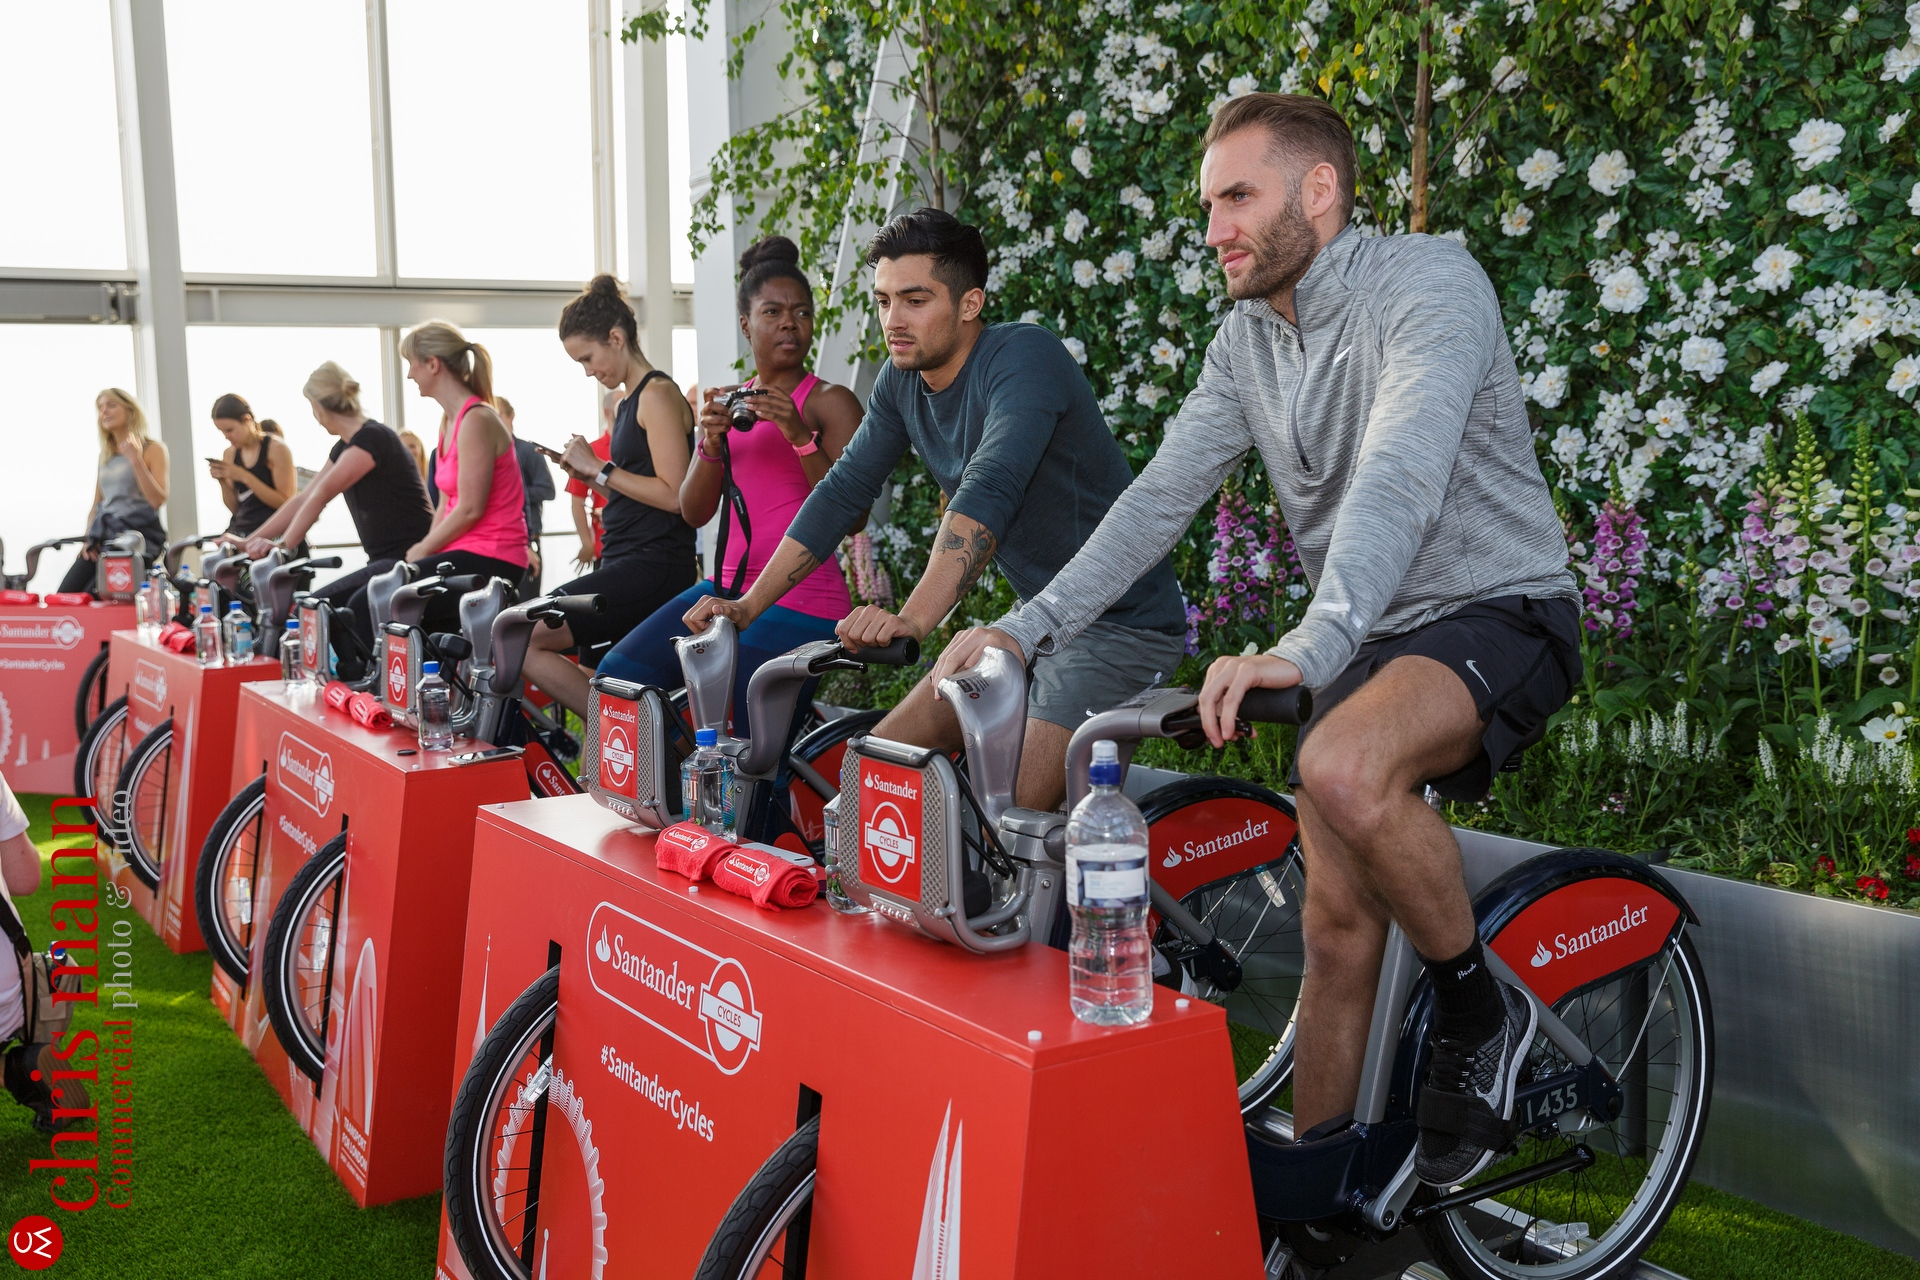 Santander-Cycles-spin-up-class-The-Shard-014